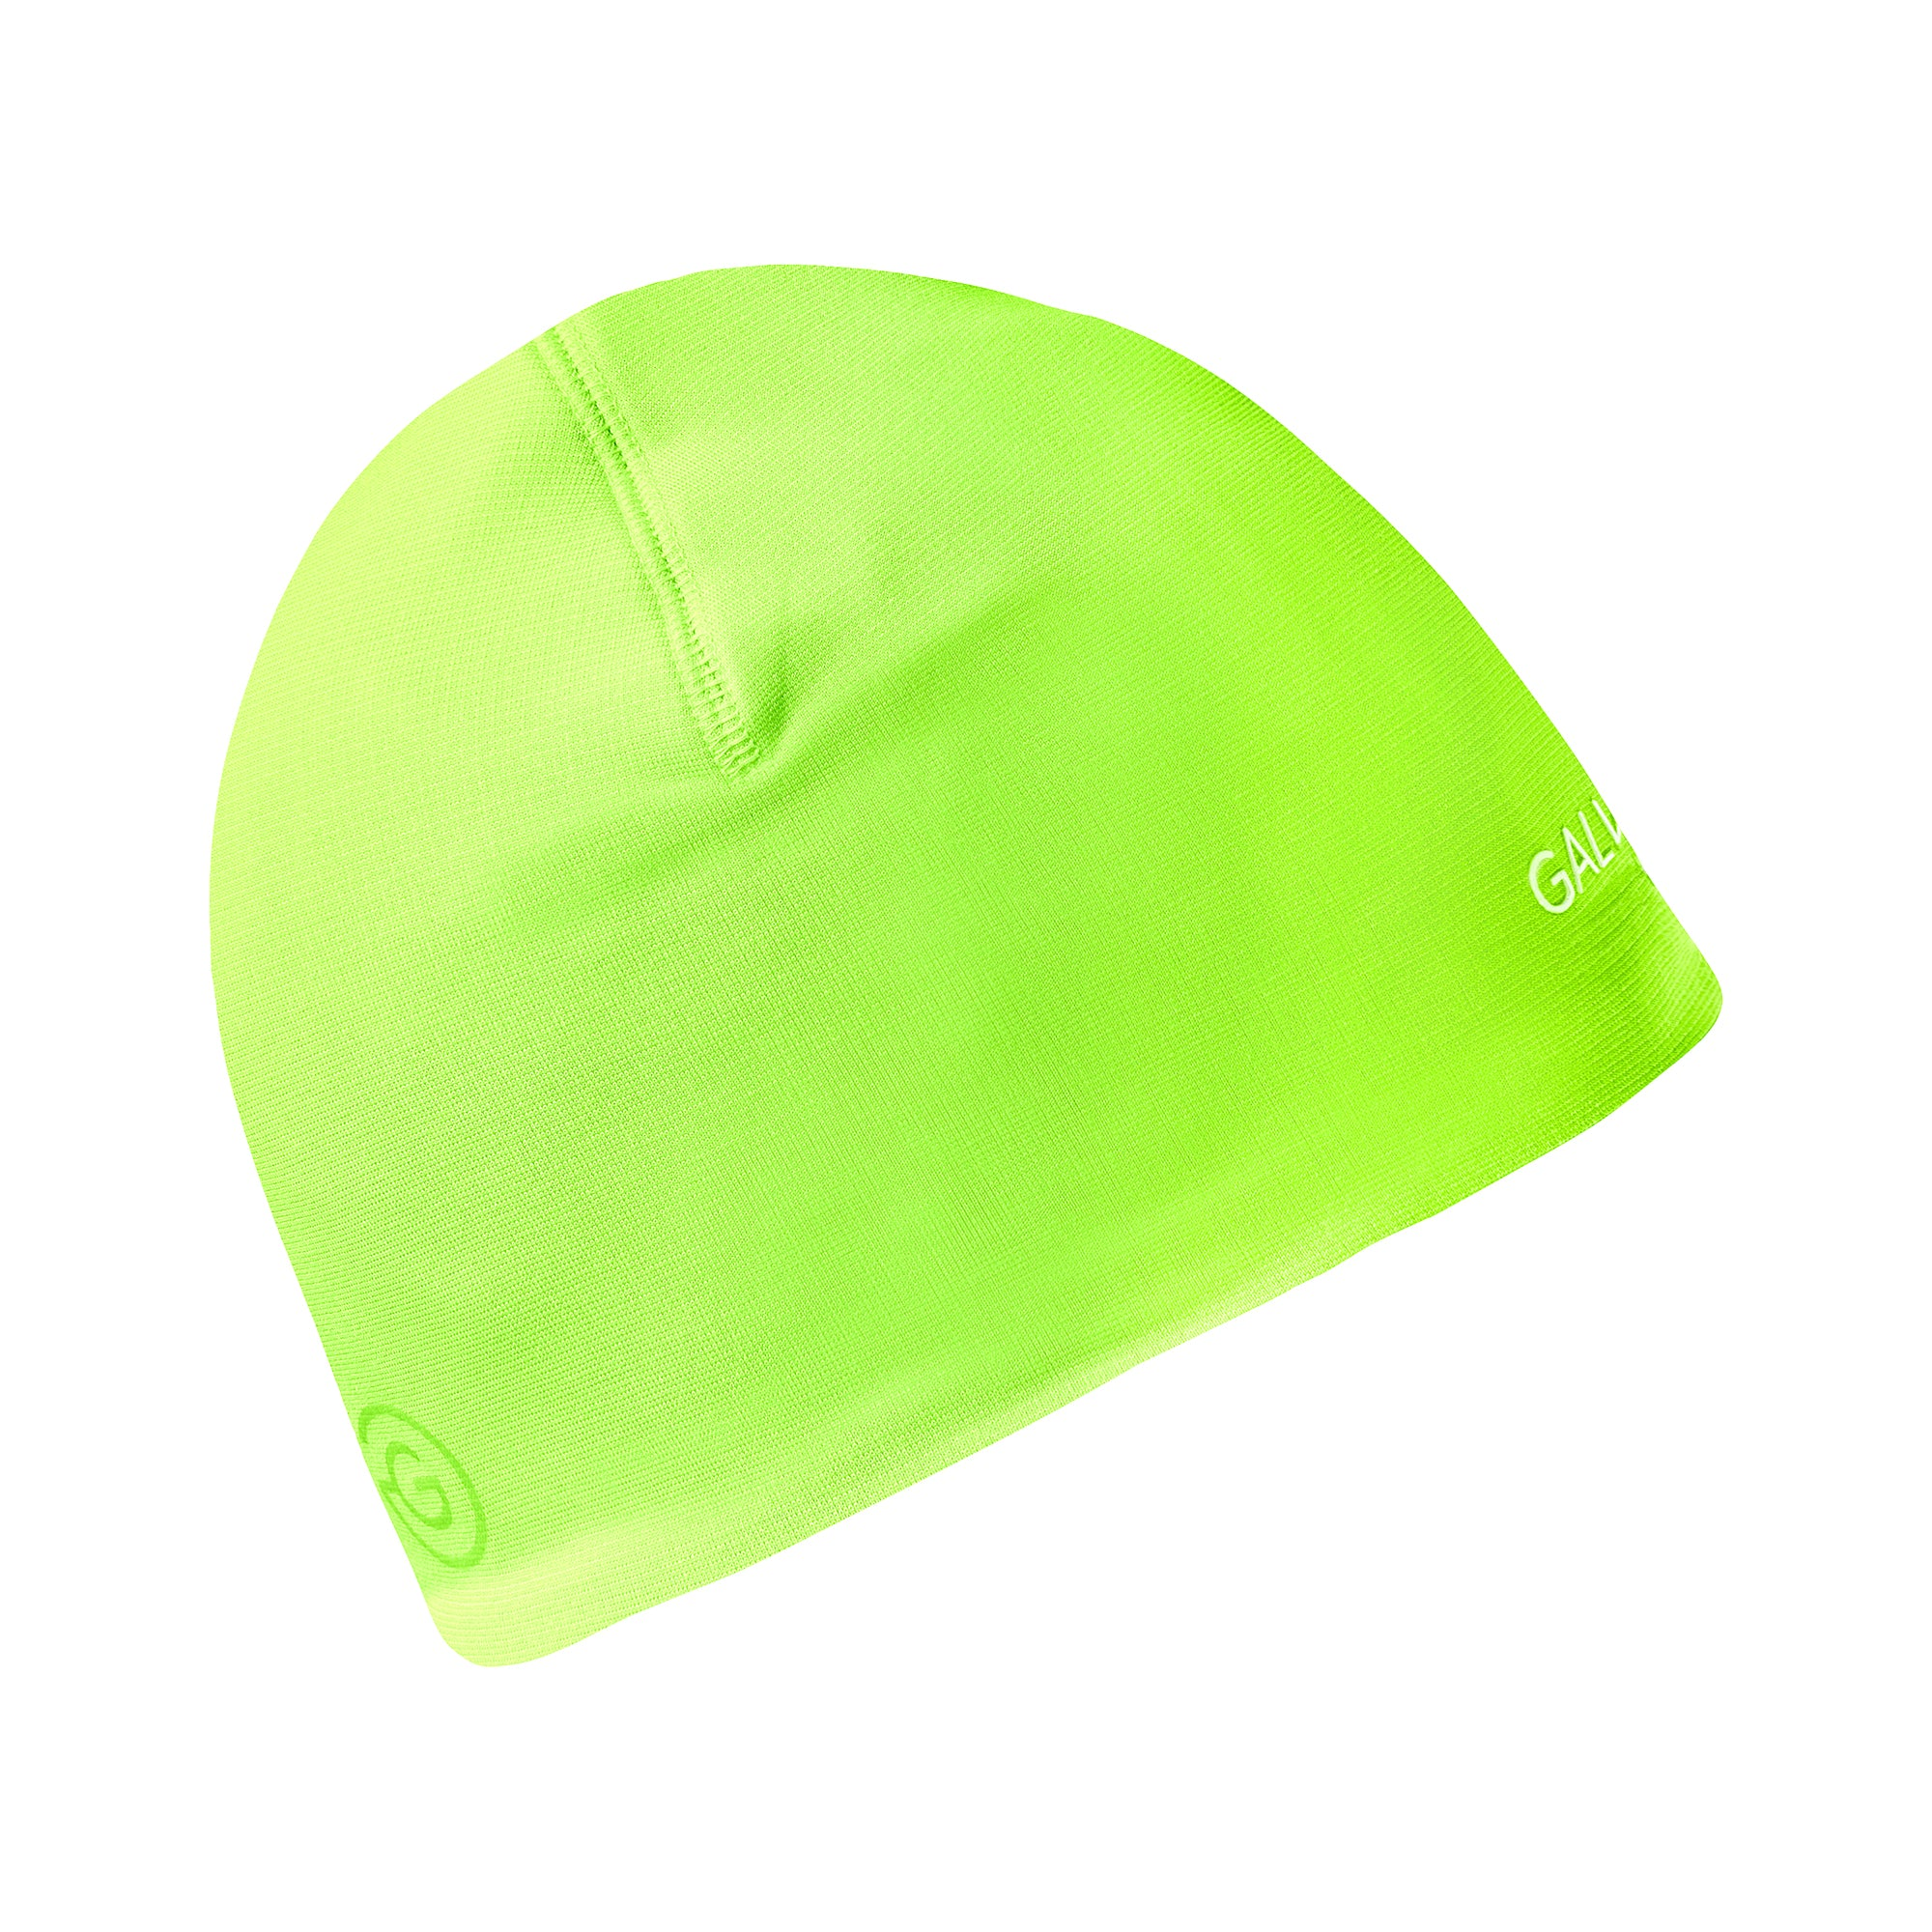 Galvin Green Duran Insula Golf Hat